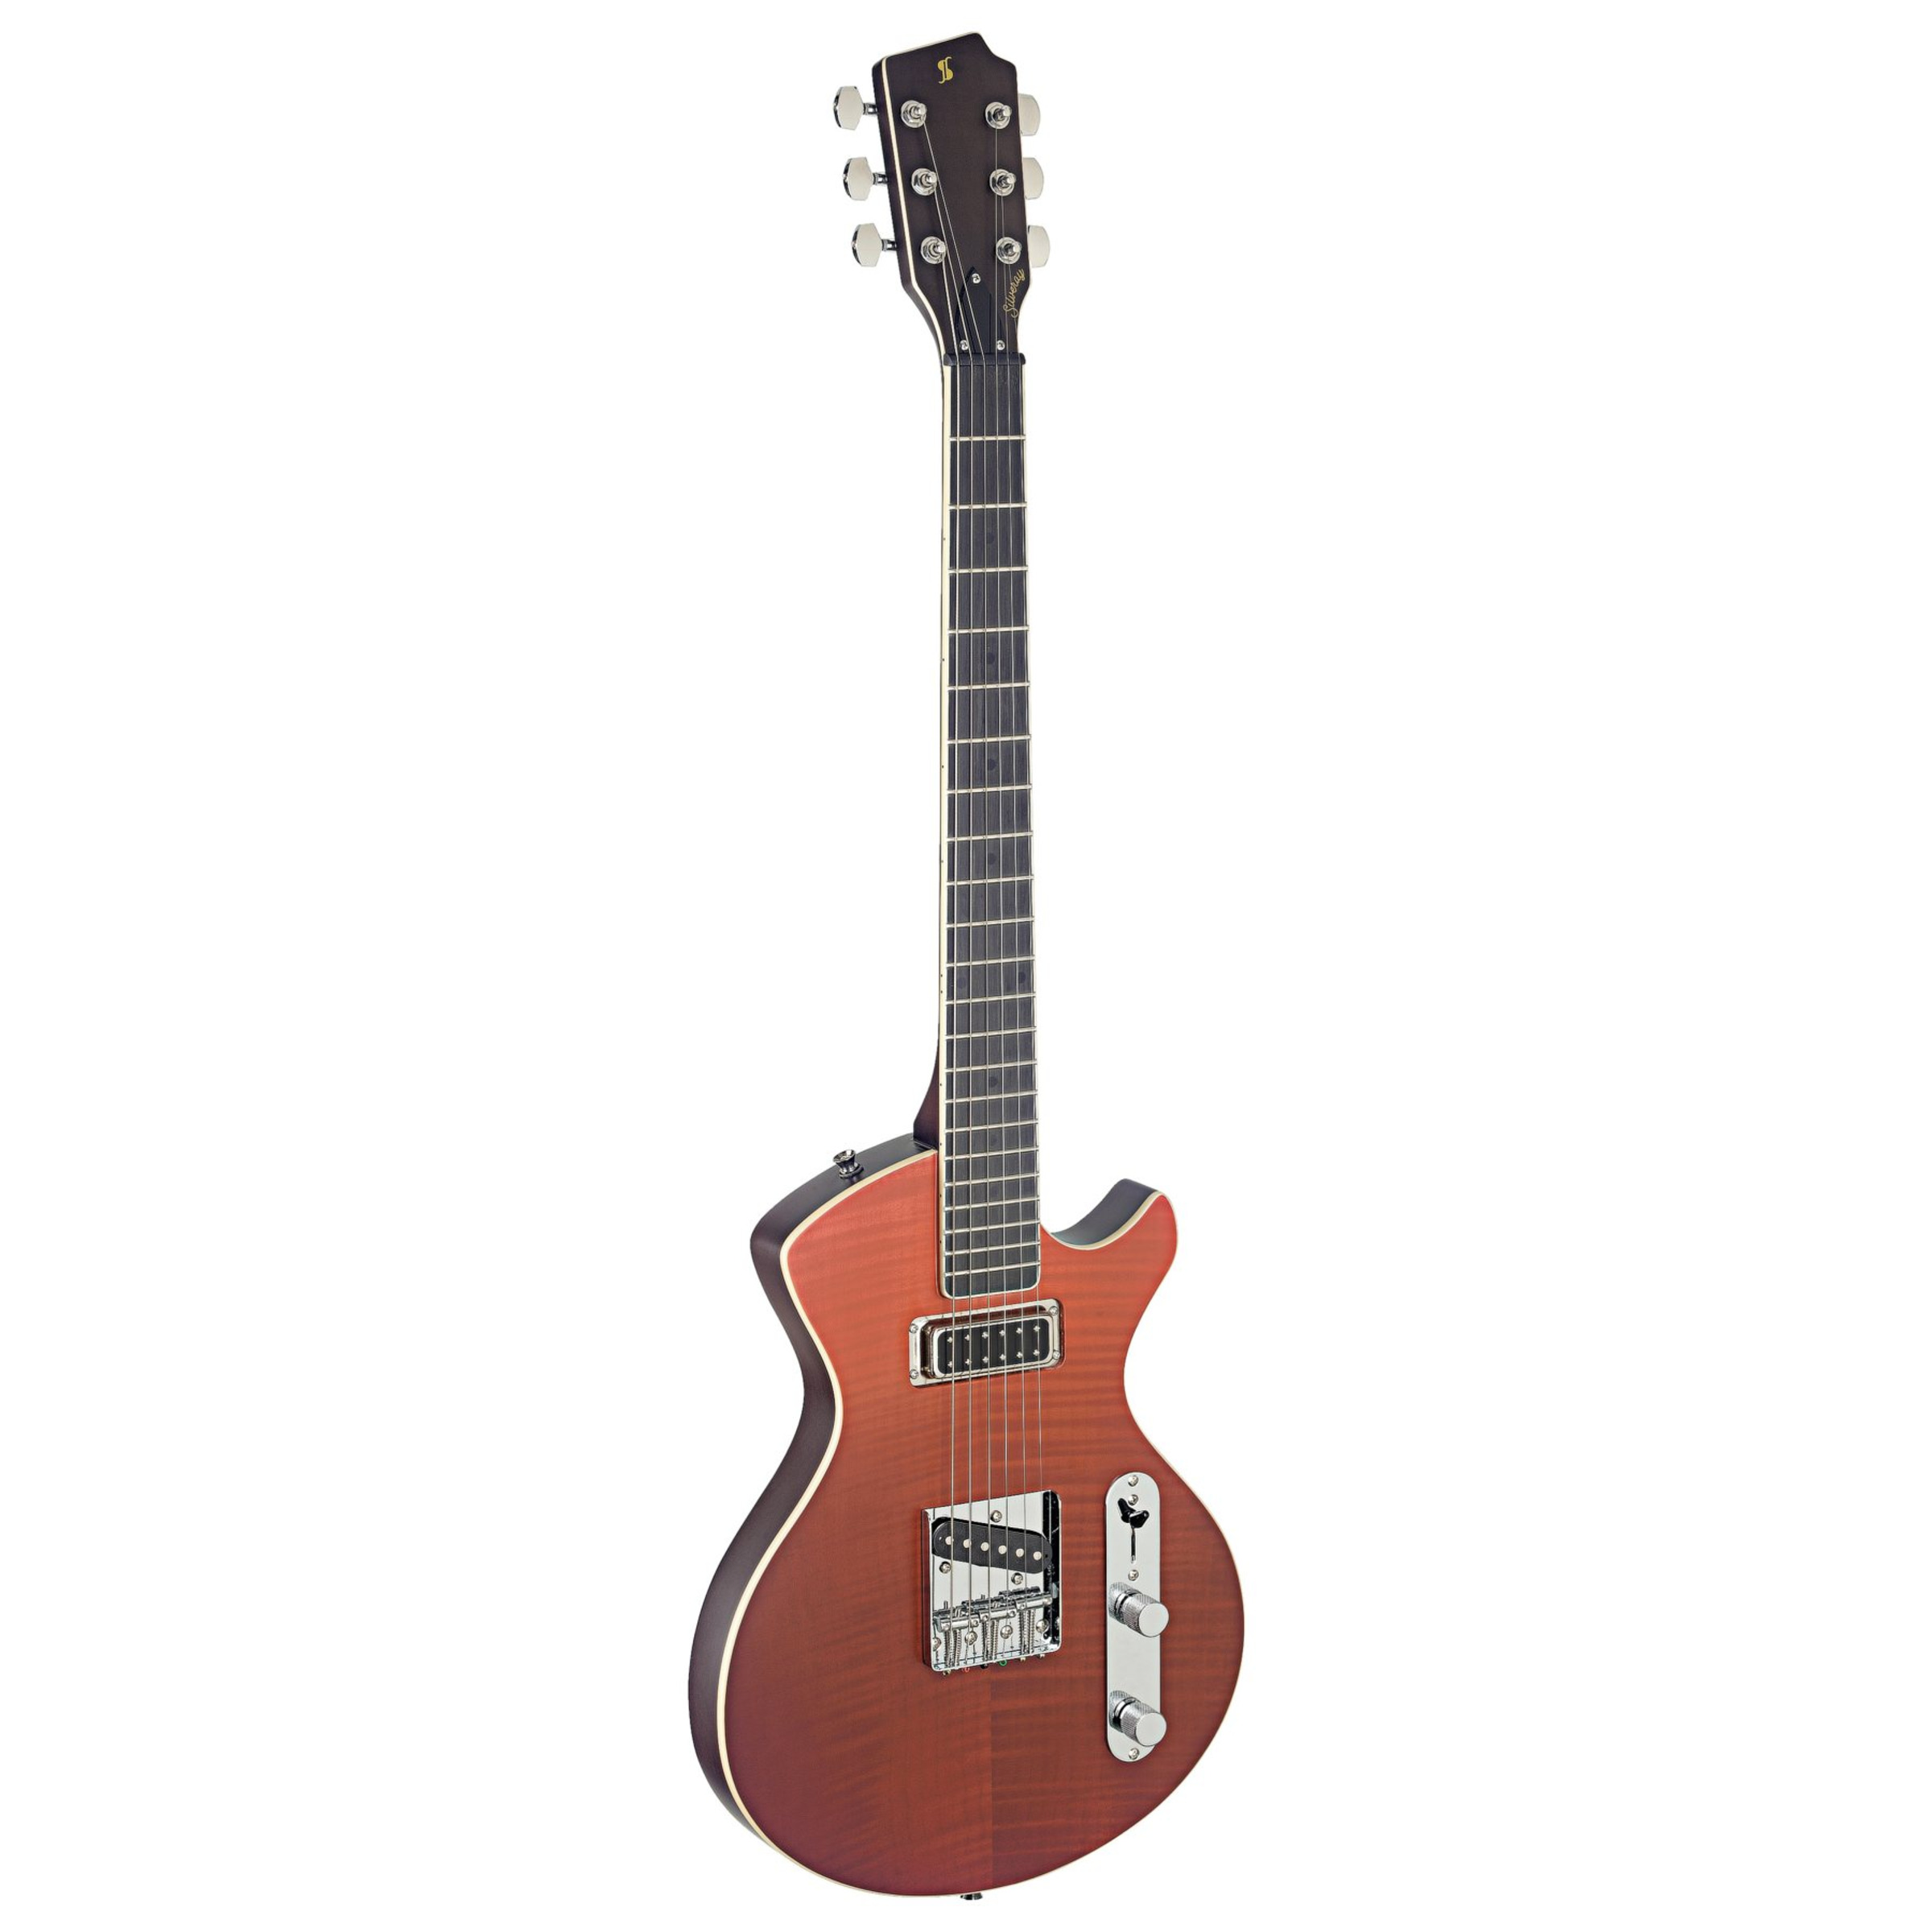 silveray custom deluxe electric guitar shading red hs giggear. Black Bedroom Furniture Sets. Home Design Ideas